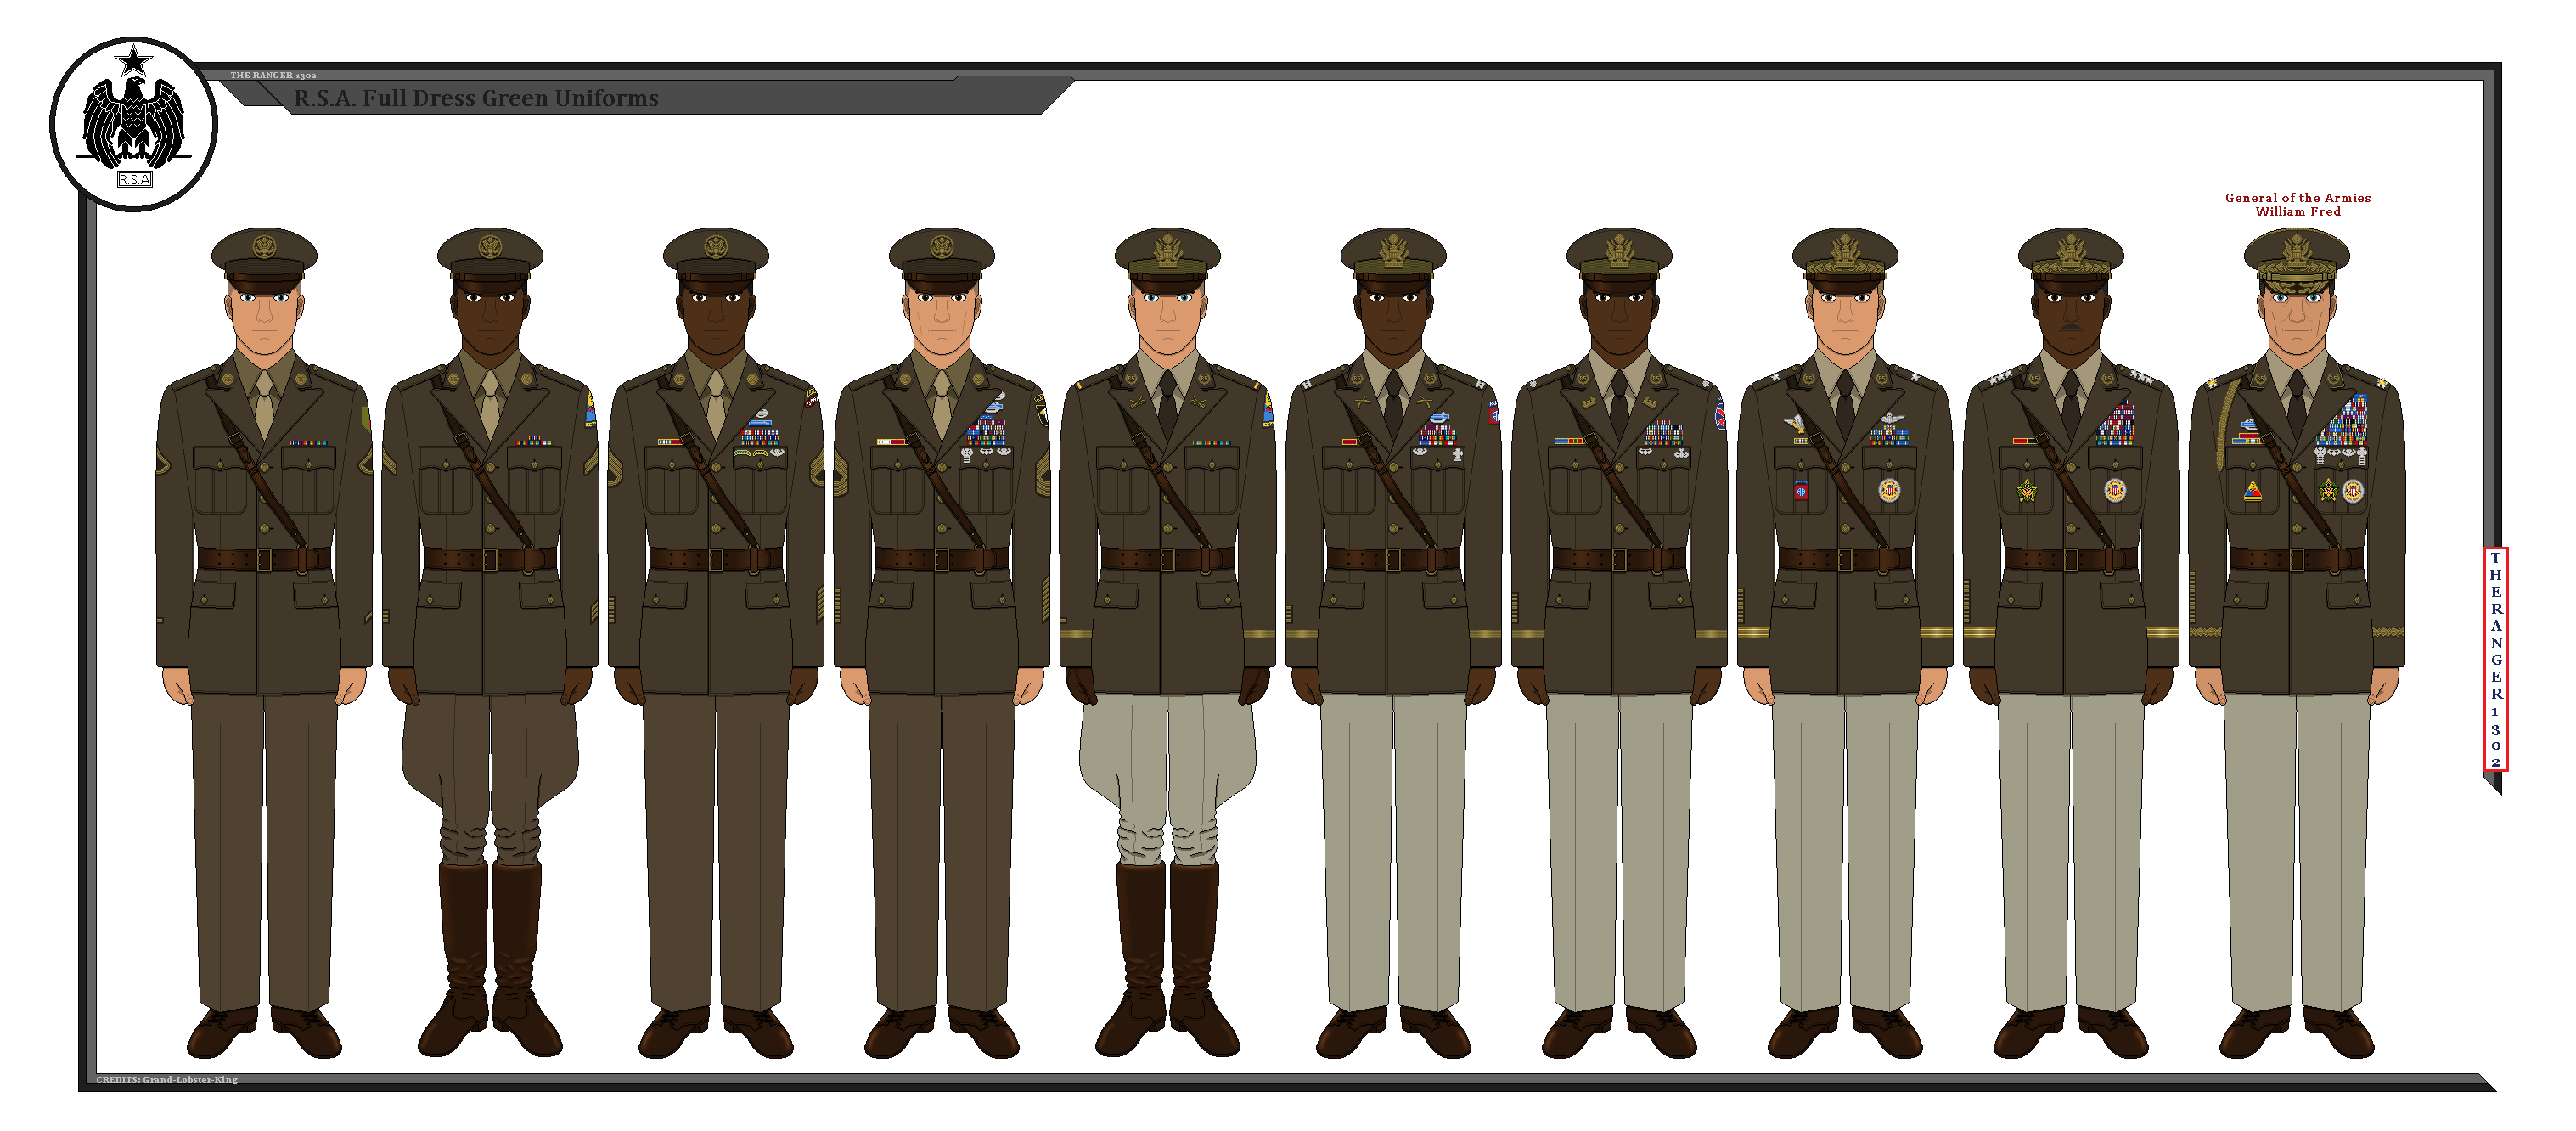 R S A Army Class-A Dress Green Uniforms by TheRanger1302 on